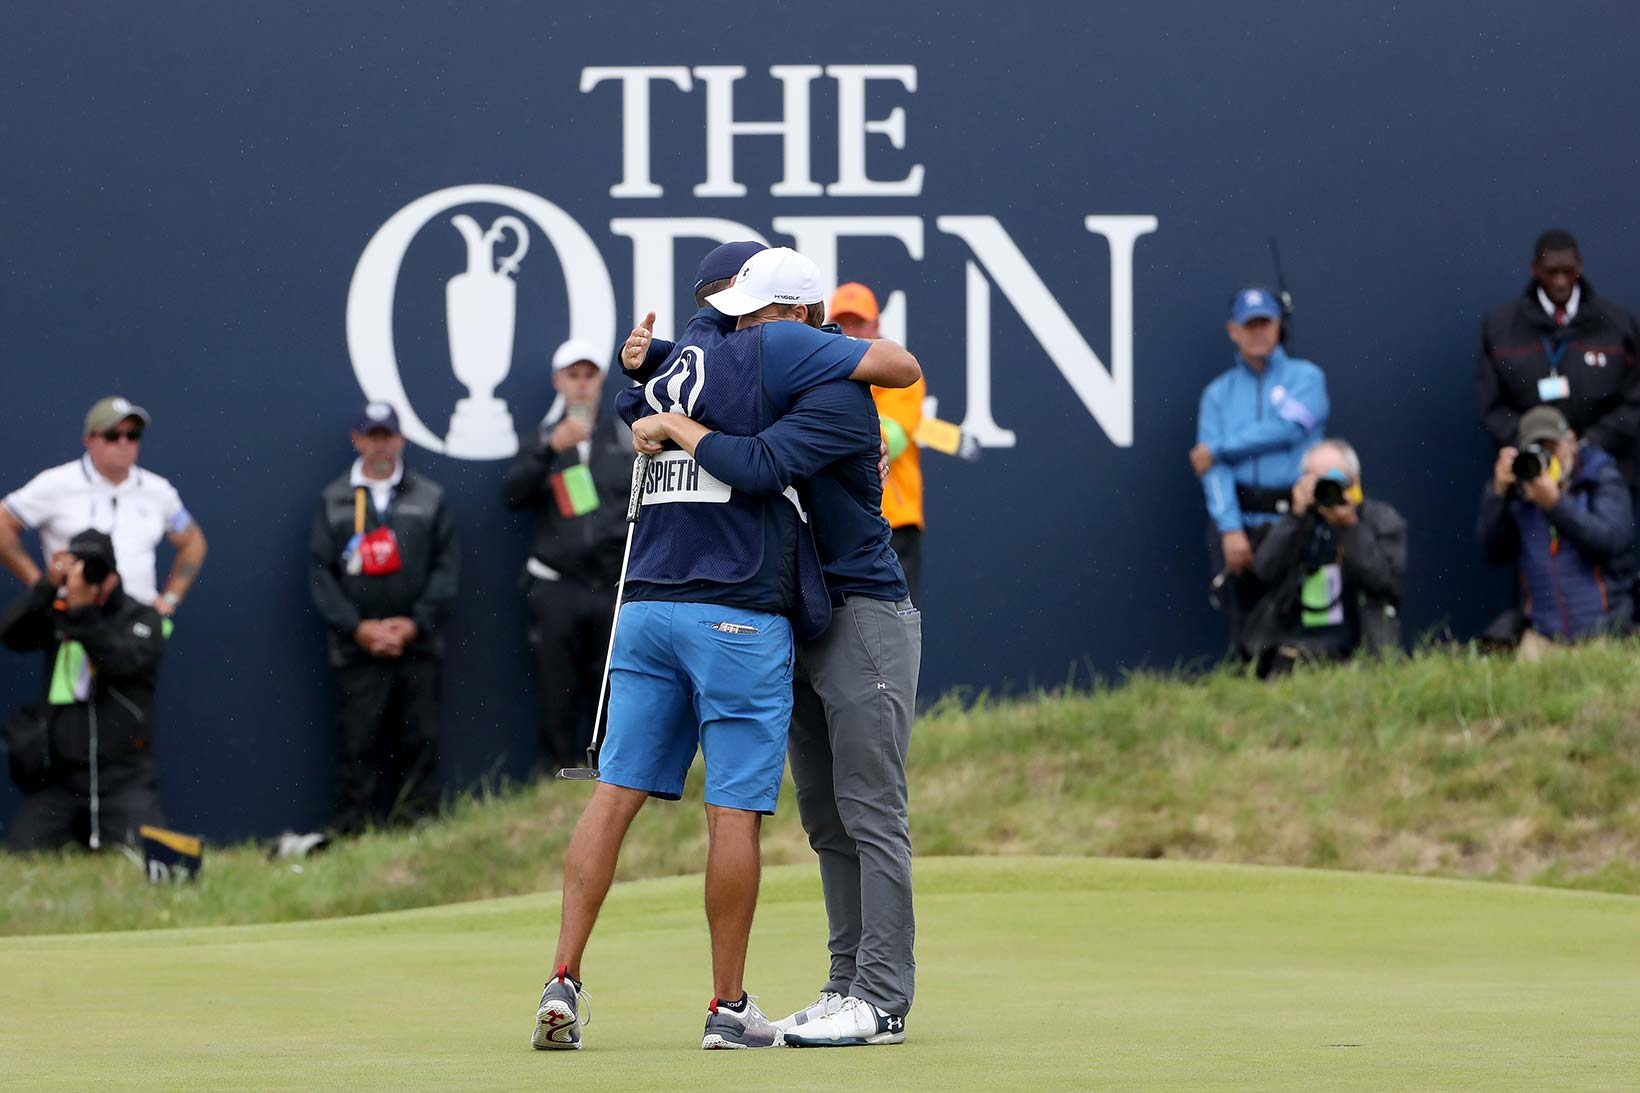 2017 Open Championship: Final Round - Jordan Celebrates the Win With Michael Greller